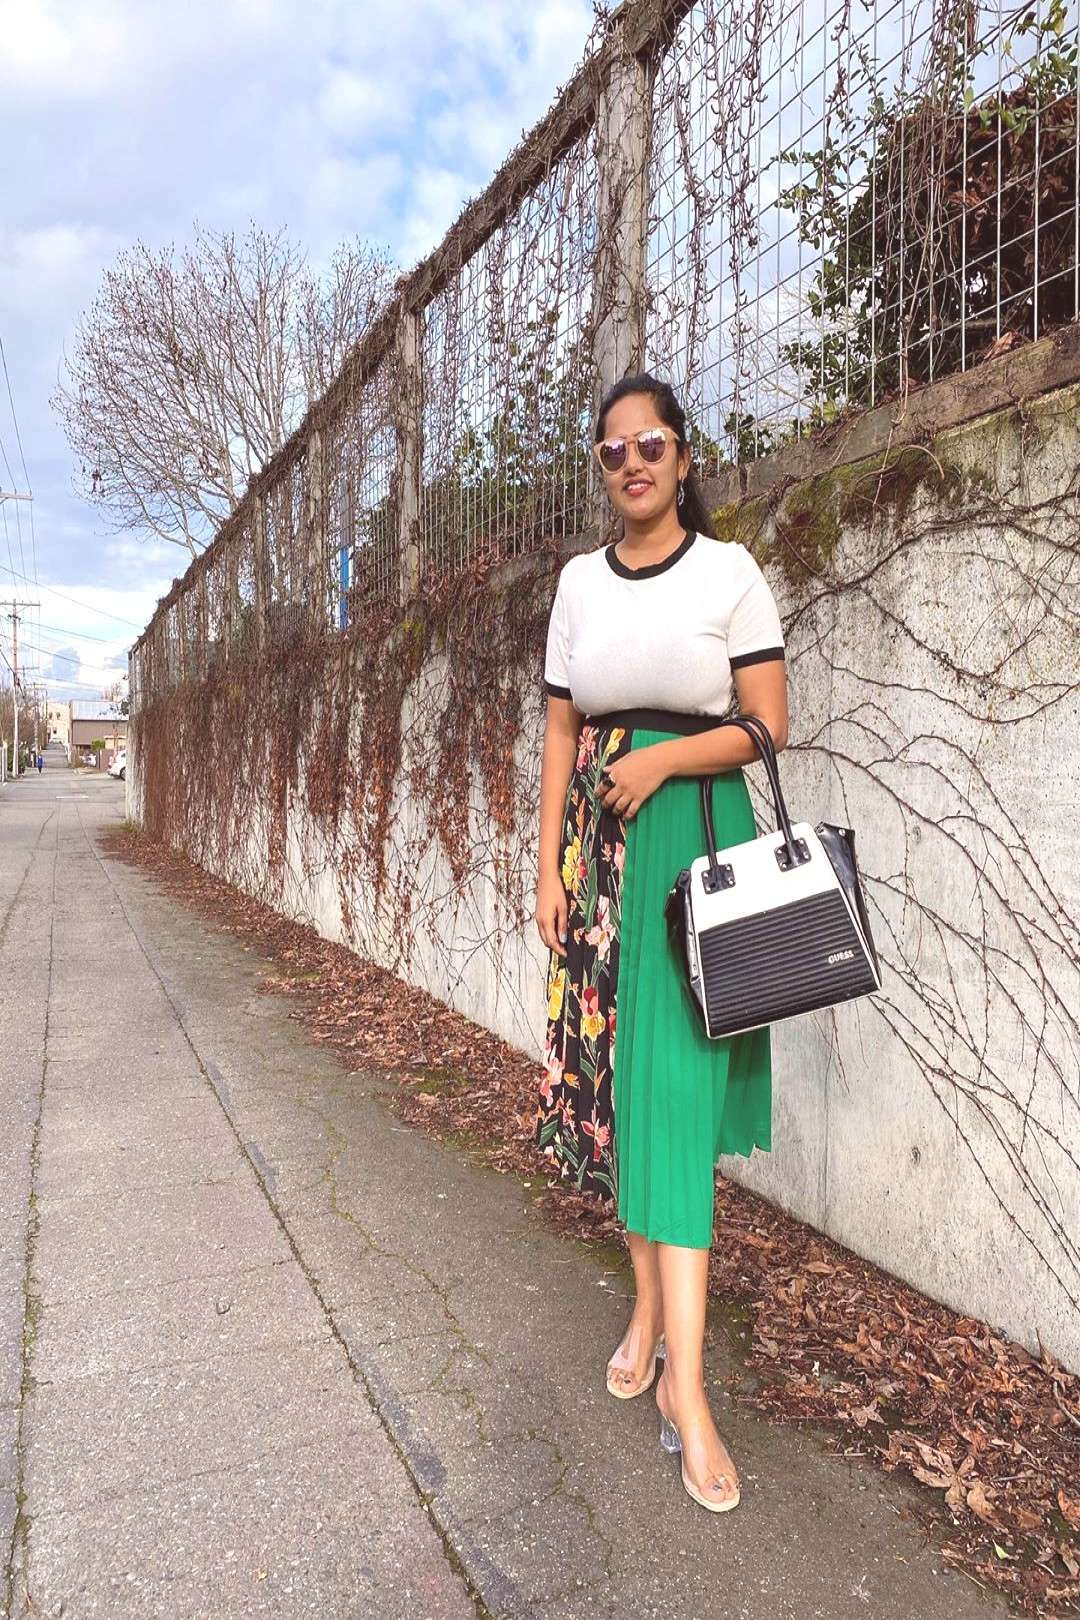 #personstanding #pleated #outdoor #skirt #lunch #yeste #wore #knit #date #with #top #and #for #a #v Wore a knit top and a pleated skirt for a Lunch date with V yesteYou can find Chic fashion and more on our websit...